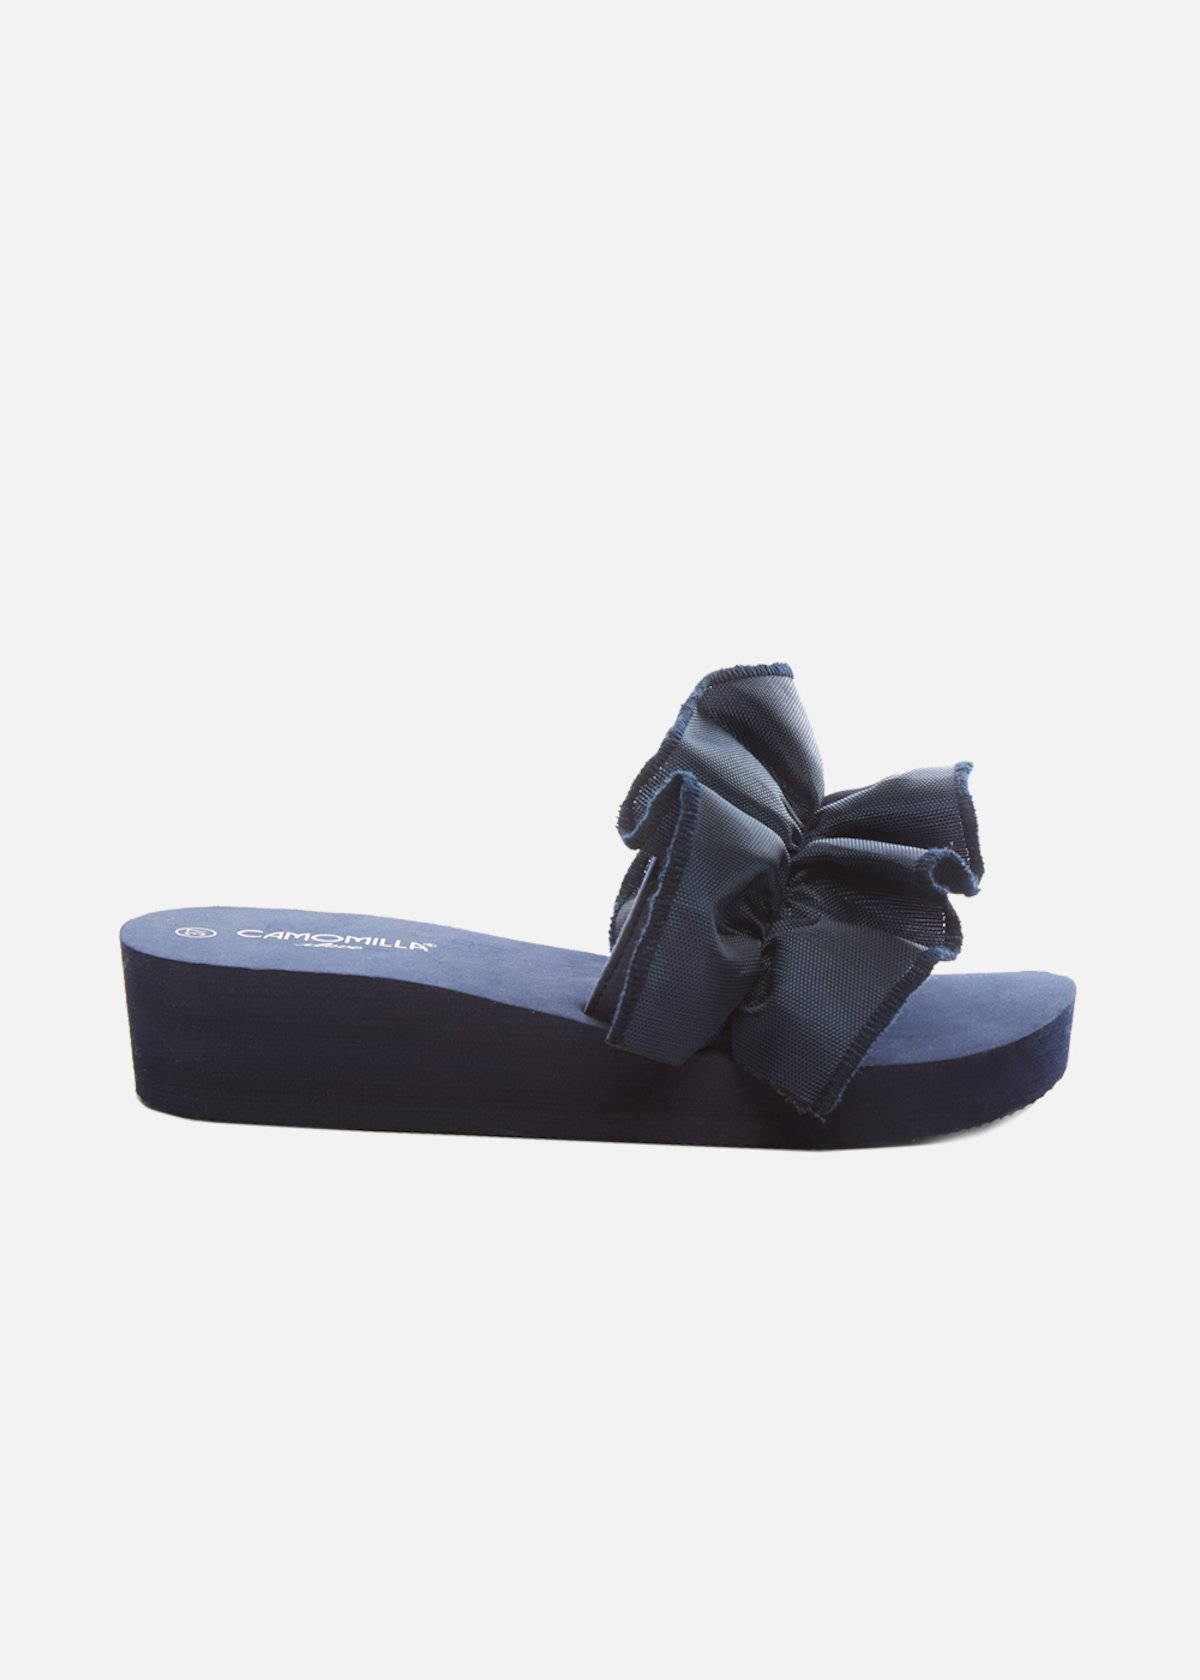 Clivia Slippers with ruffle detail on the band - Medium Blue